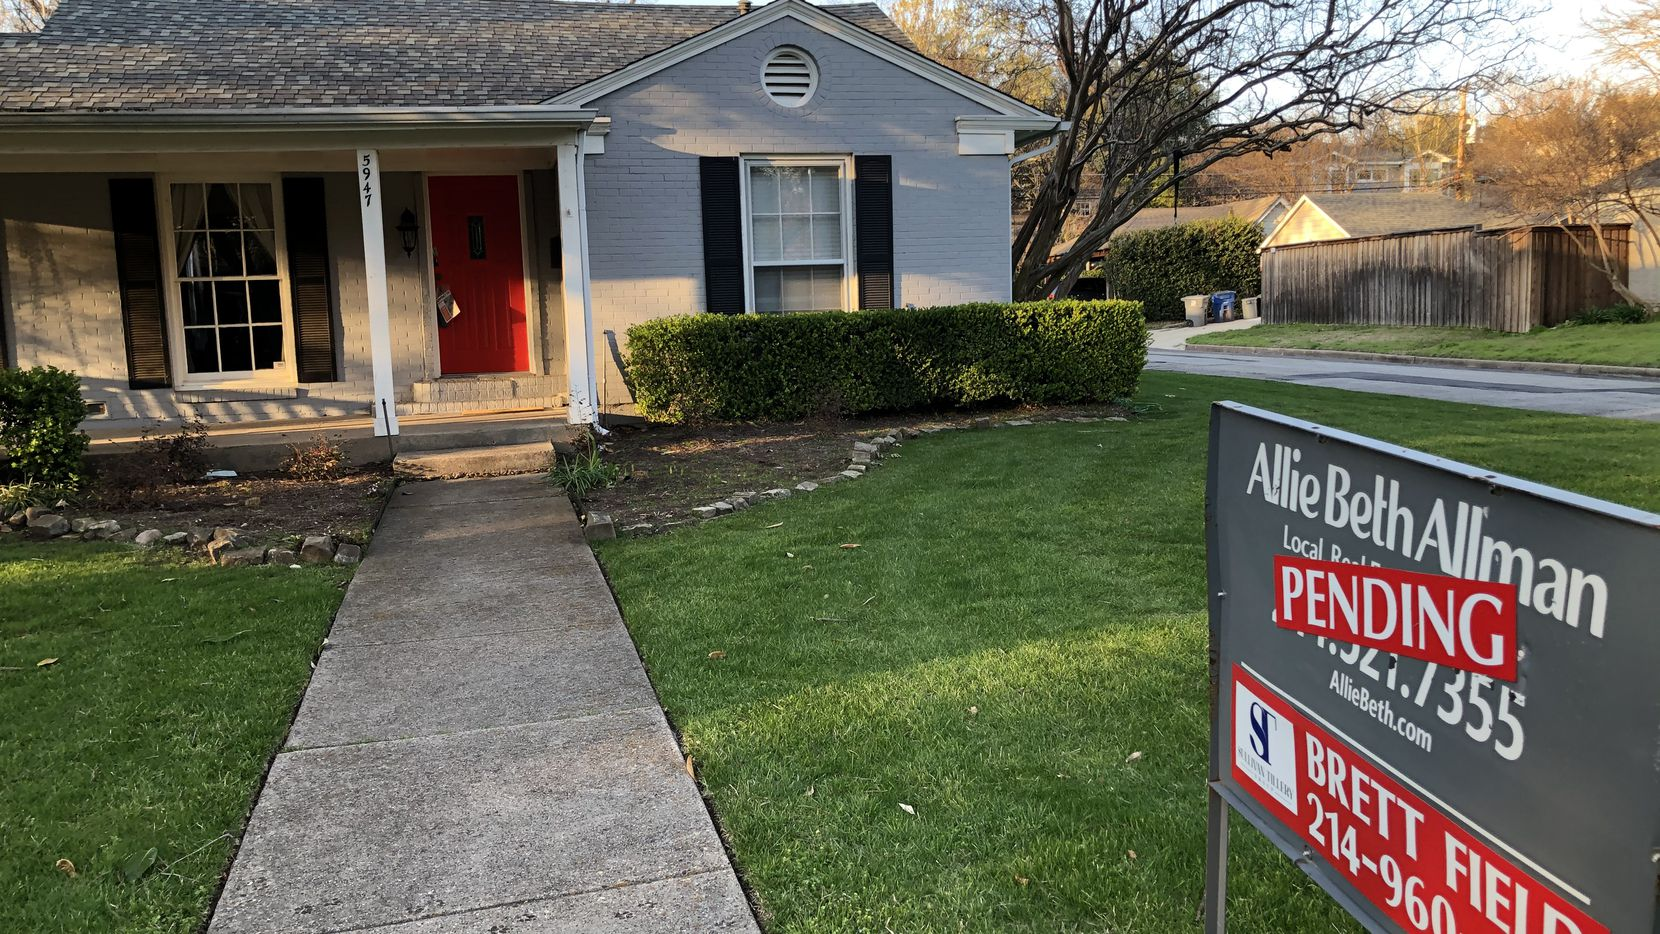 D-FW's current record home sales are expected to extend into 2021.